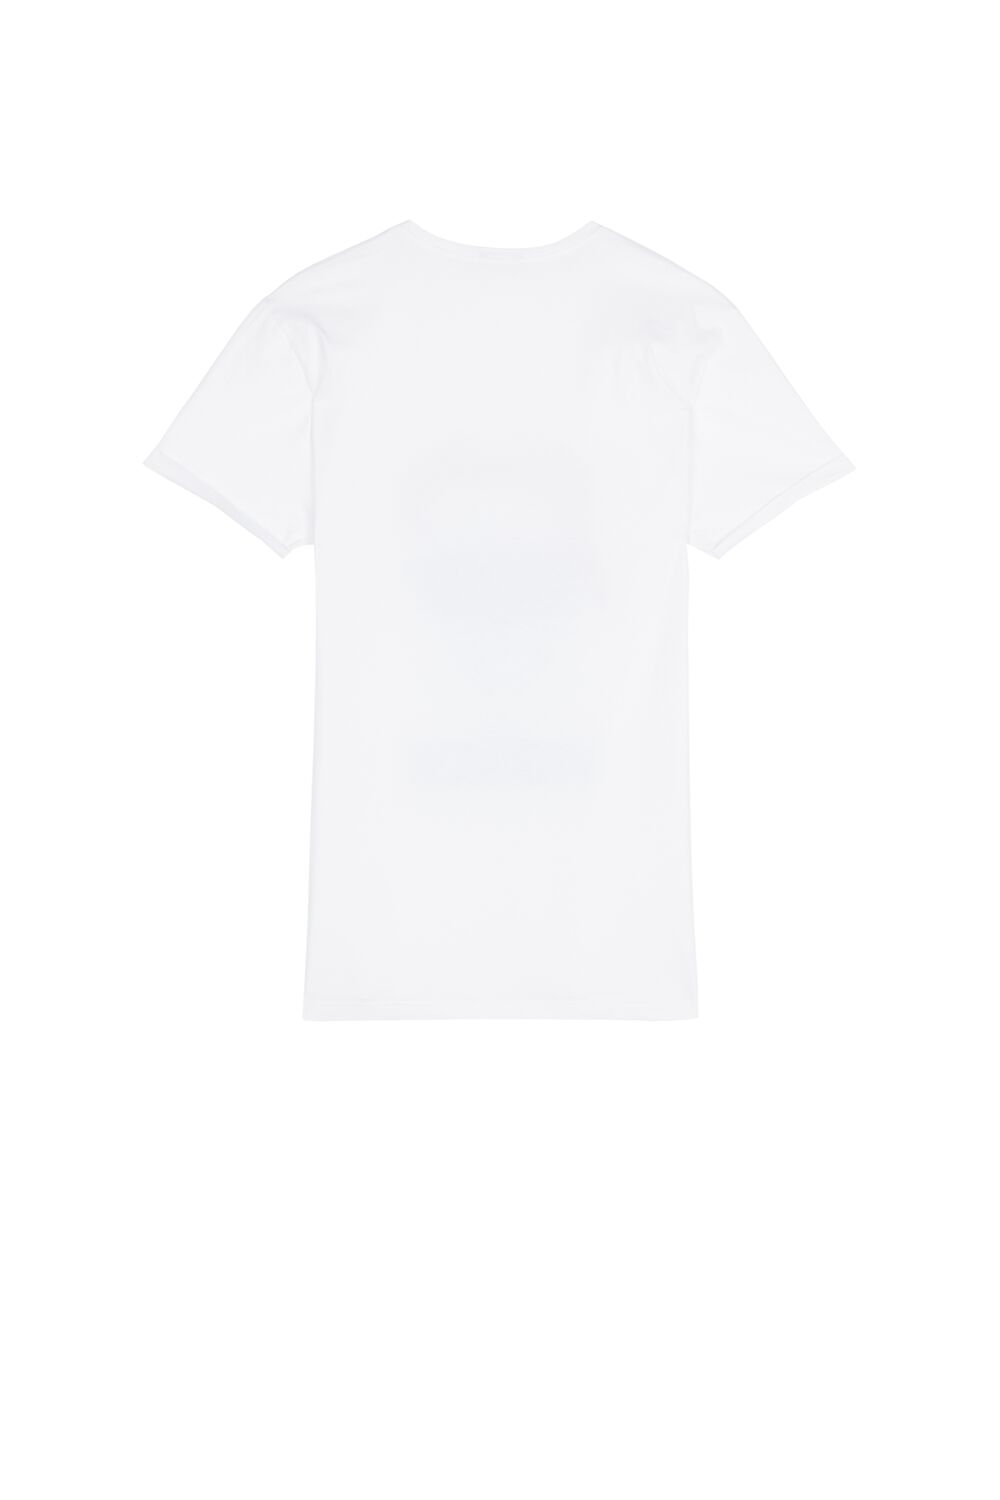 Cotton T-Shirt with Sleeve Cuffs